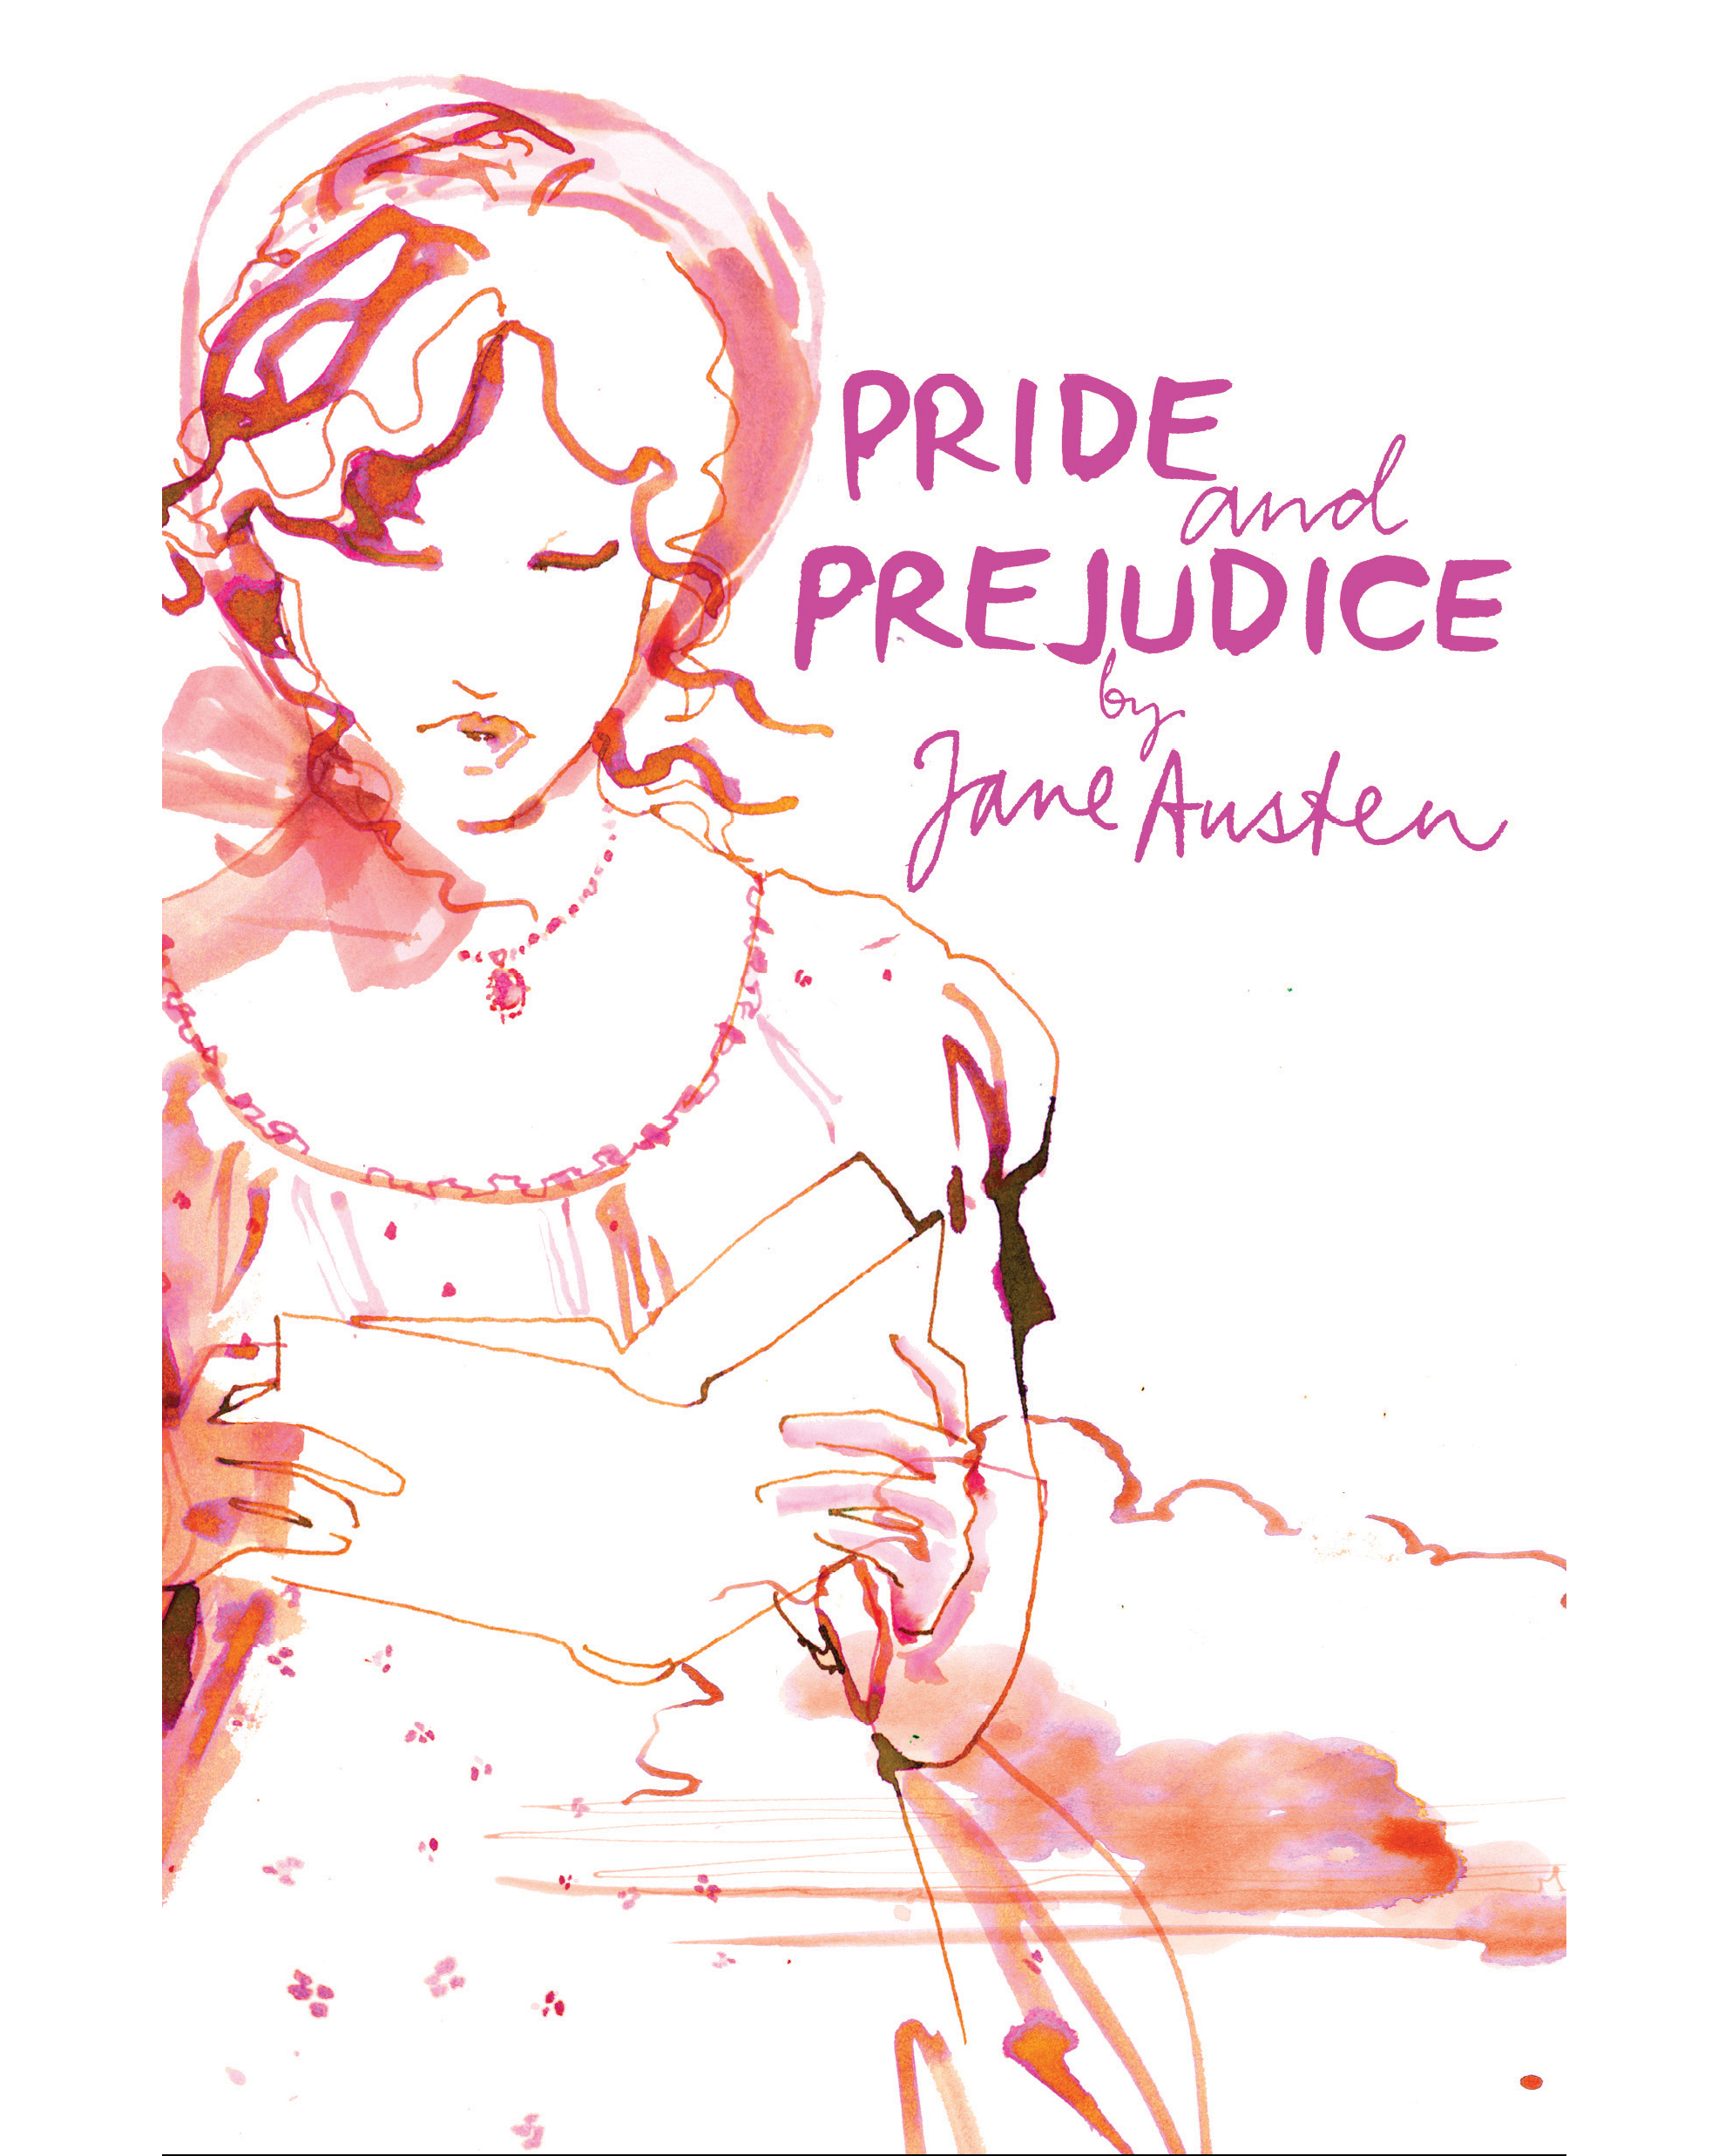 books-read-before-marriage-pride-and-prejudice-austen-0115.jpg